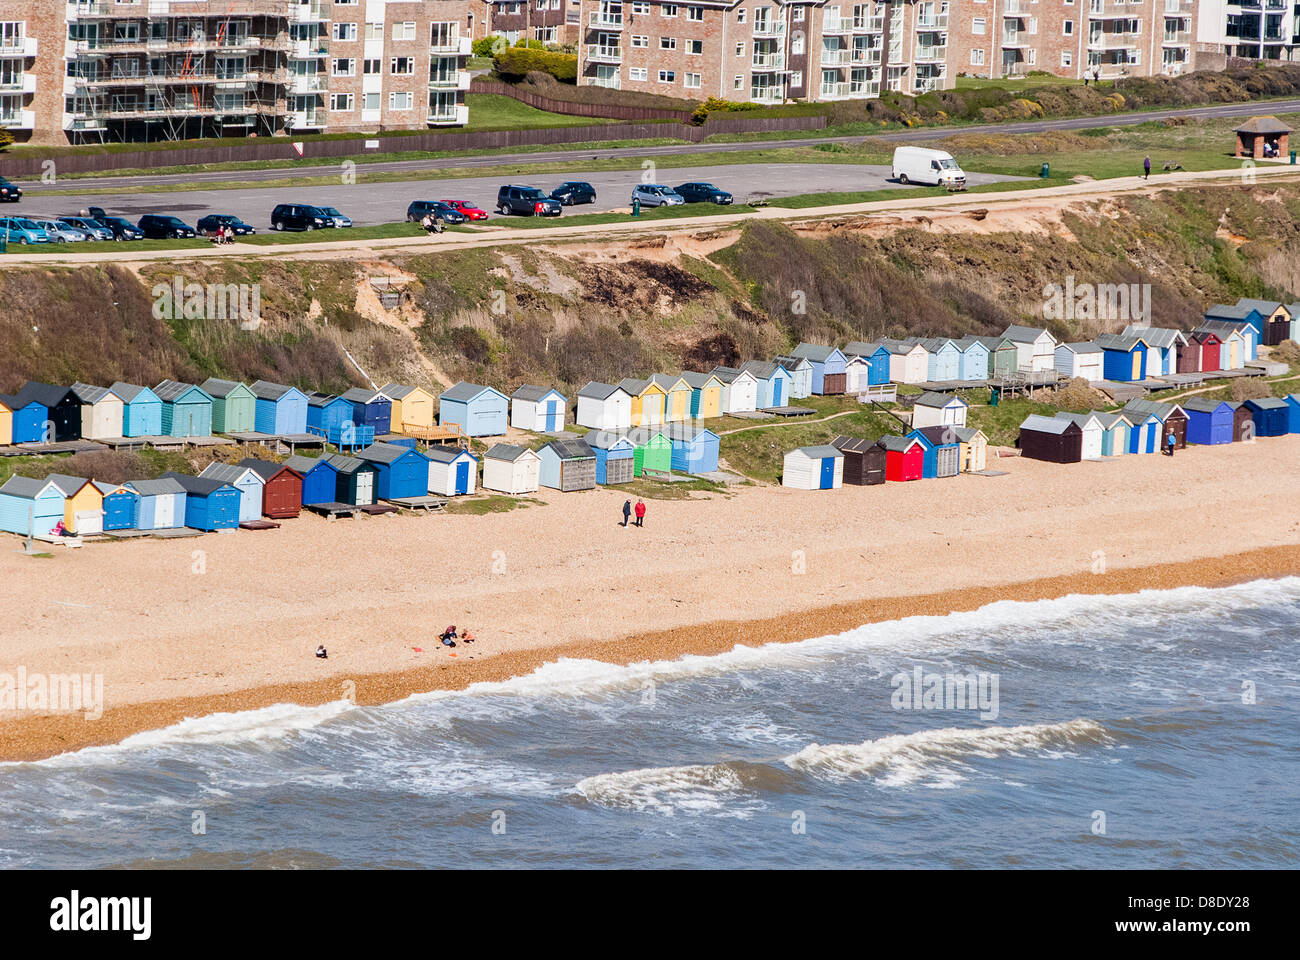 Milford On Sea Barton On Sea Aerial view of Beach Huts - Stock Image